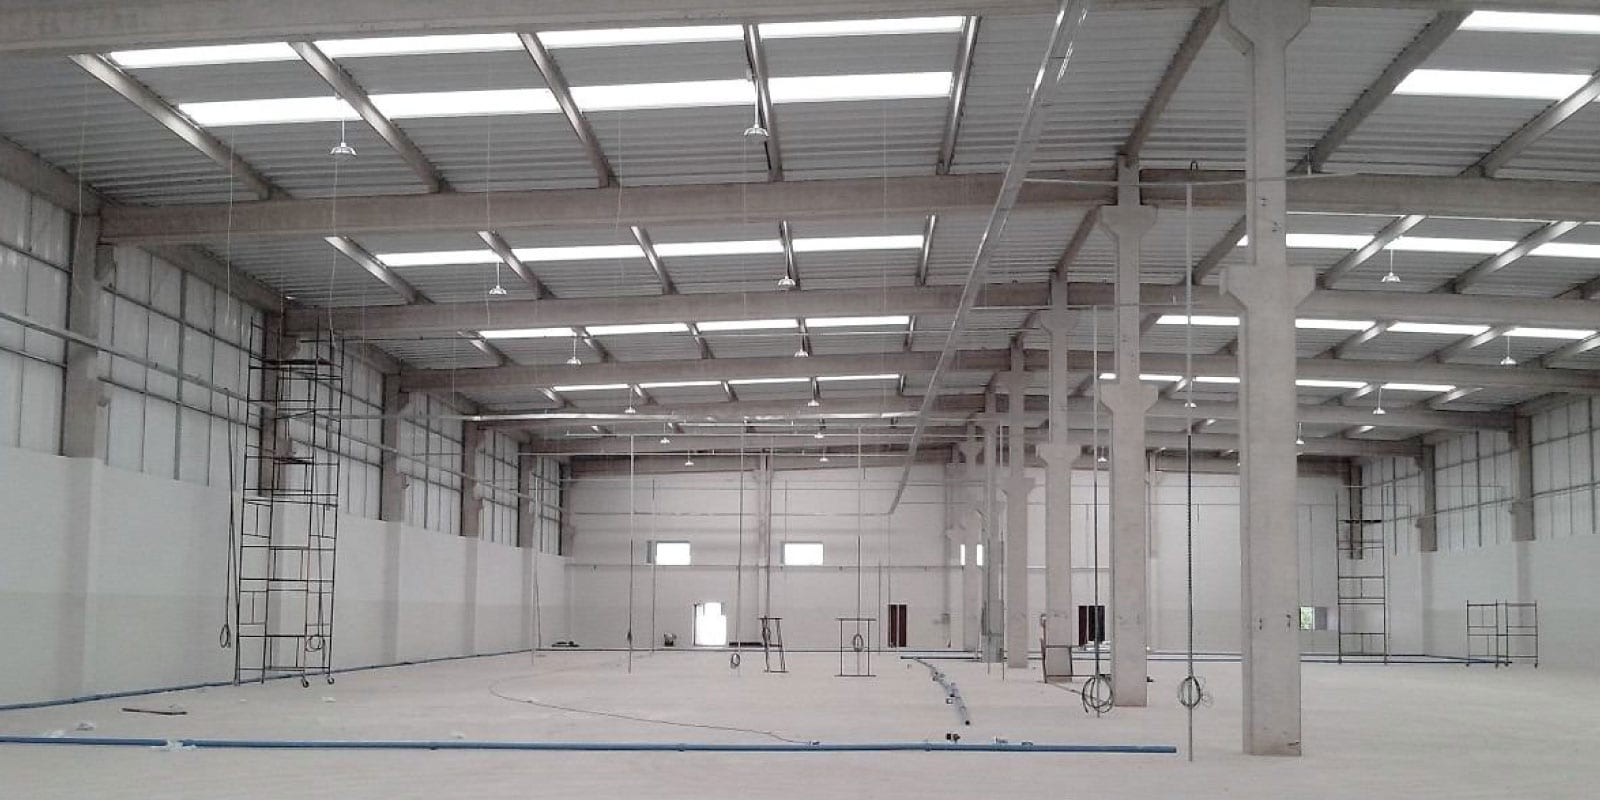 Commercial Roofing Sydney skylights clear panels